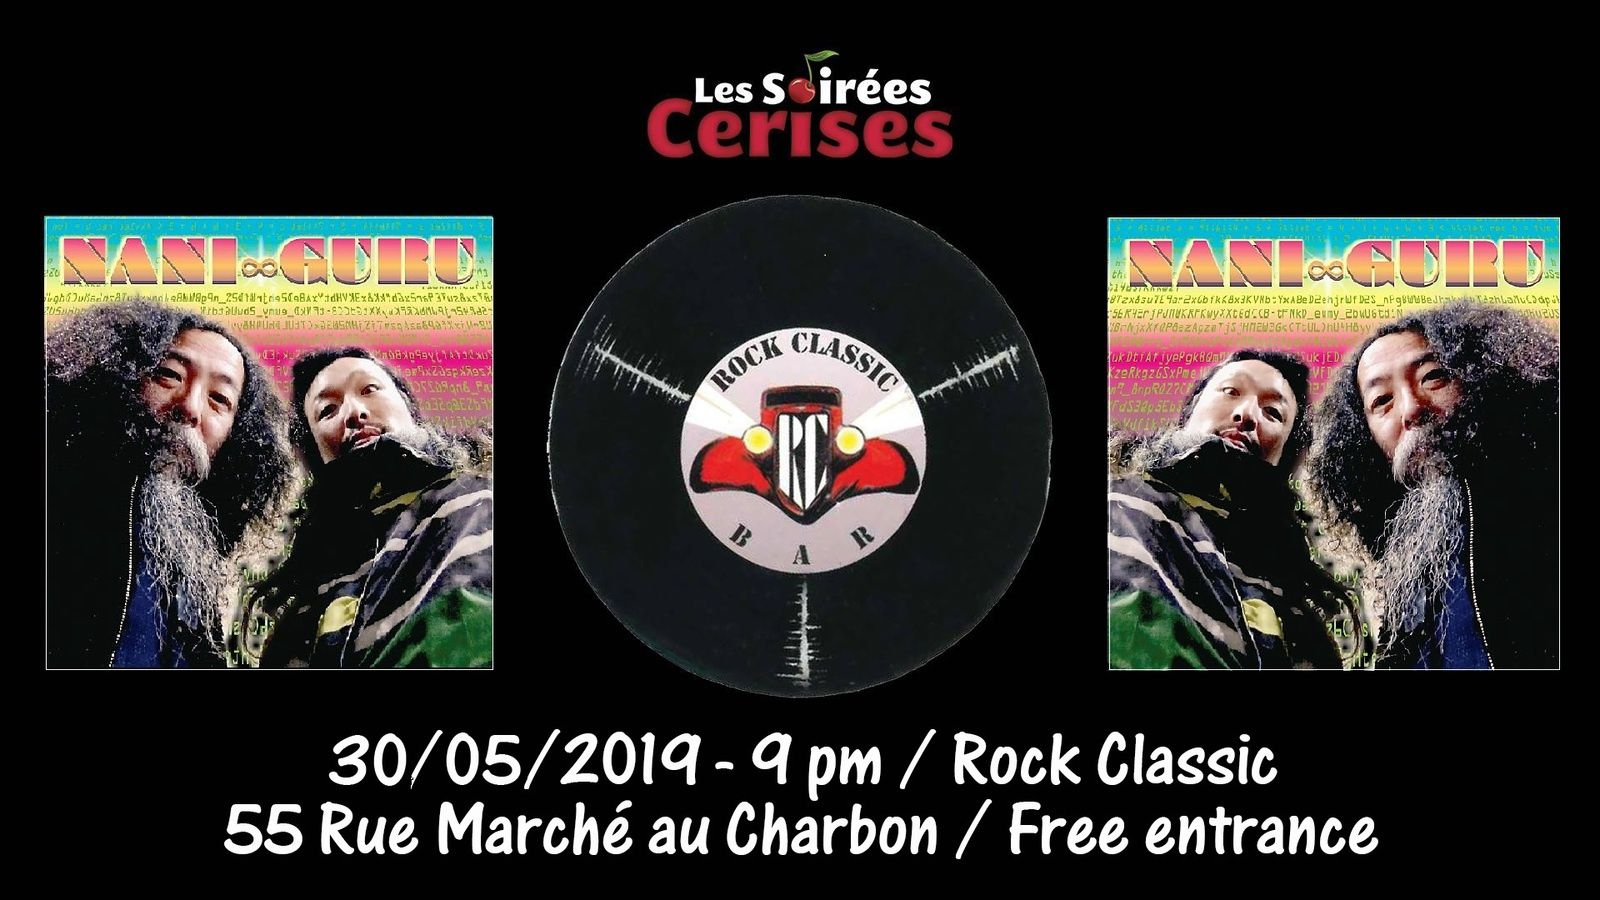 ▶ Nani∞Guru (Japan / Acid Mothers Temple) au Rock Classic - 30/05/2019 - 21h00 - Entrée gratuite / Free entrance